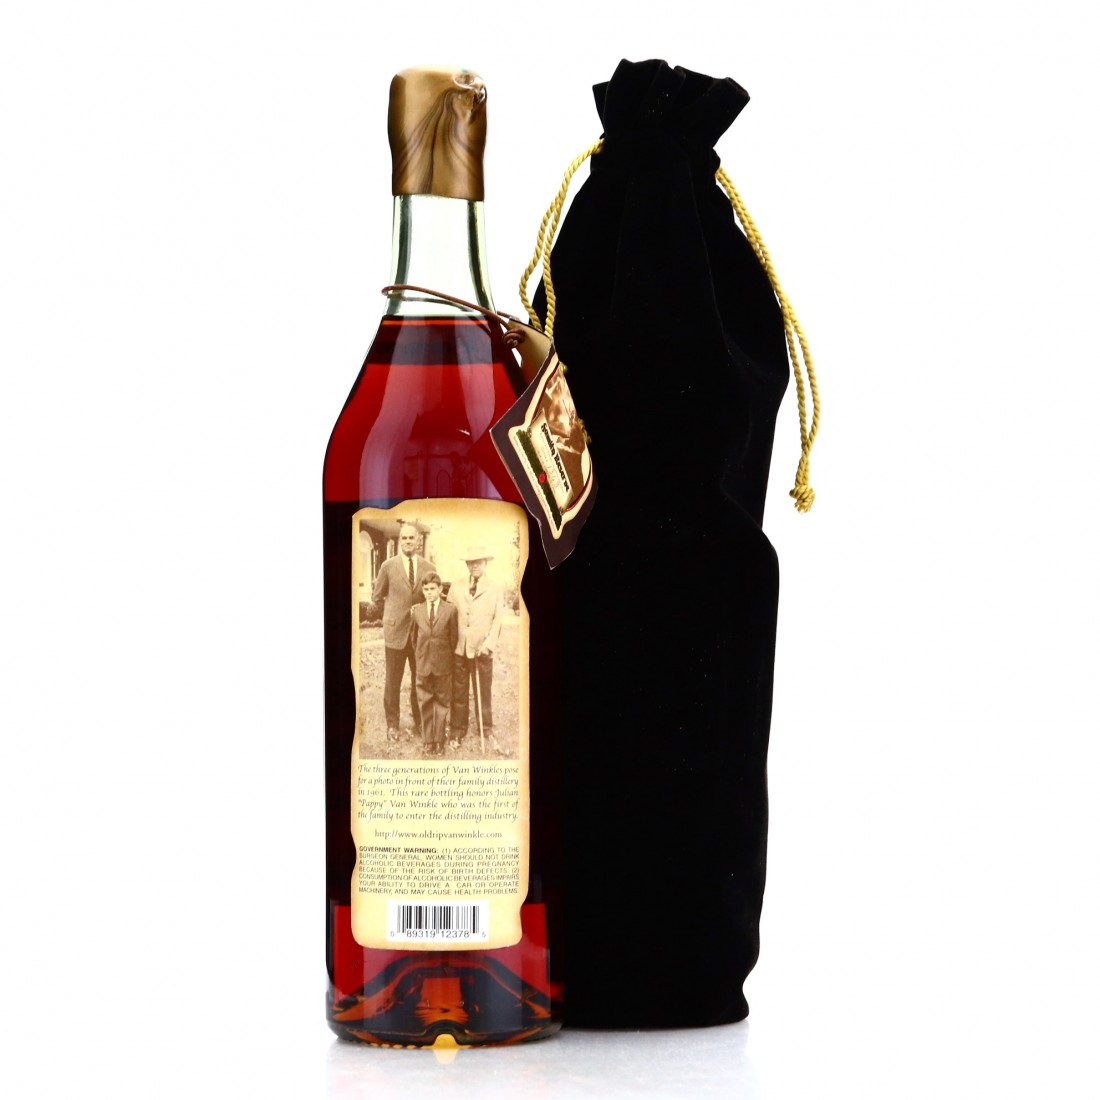 Pappy Van Winkle 23 Year Old Family Reserve 1999 / Gold Wax First Release